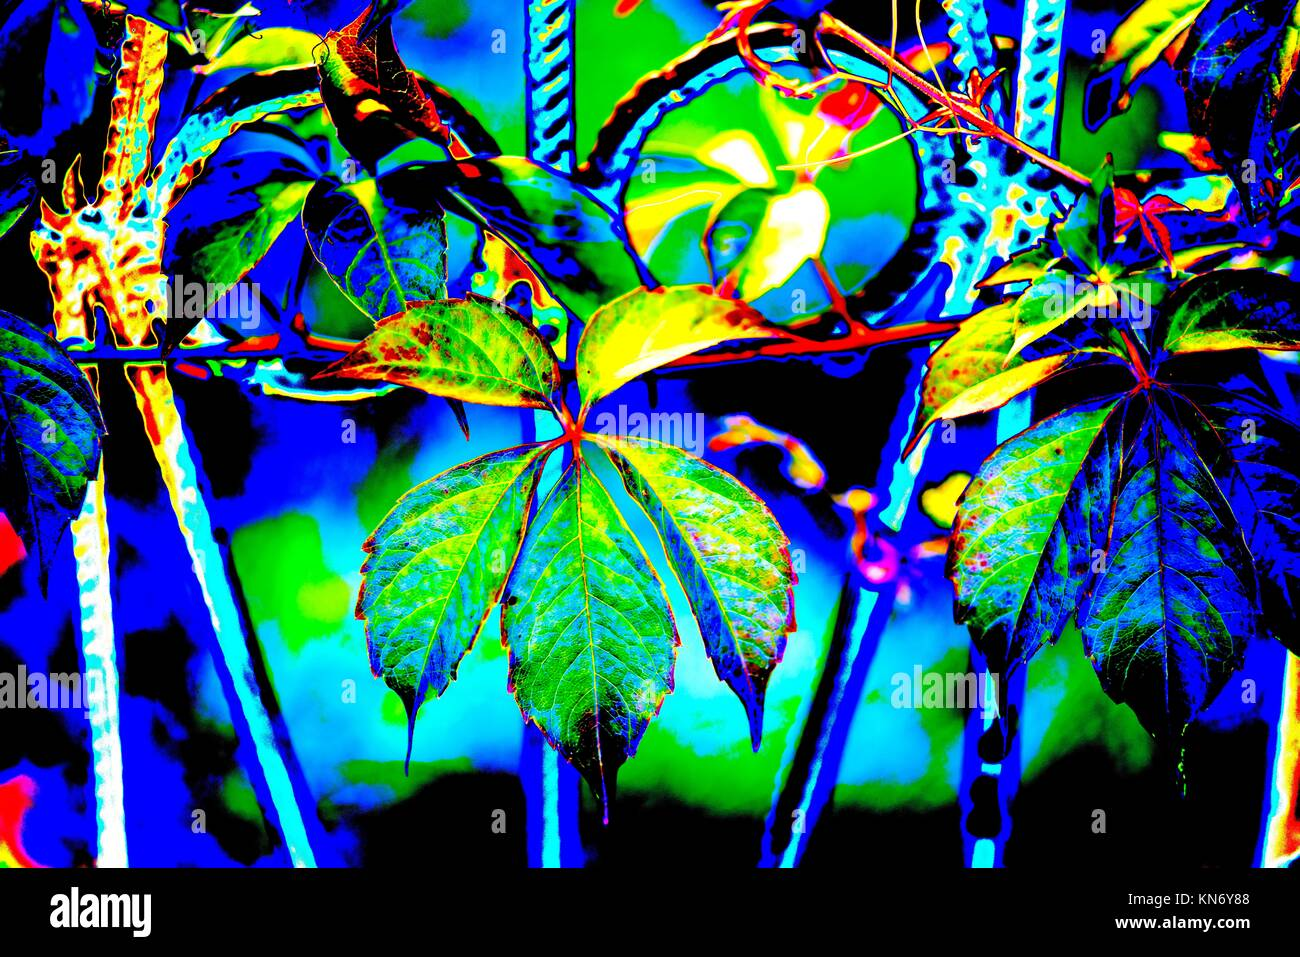 Vines Fence Stockfotos & Vines Fence Bilder - Alamy